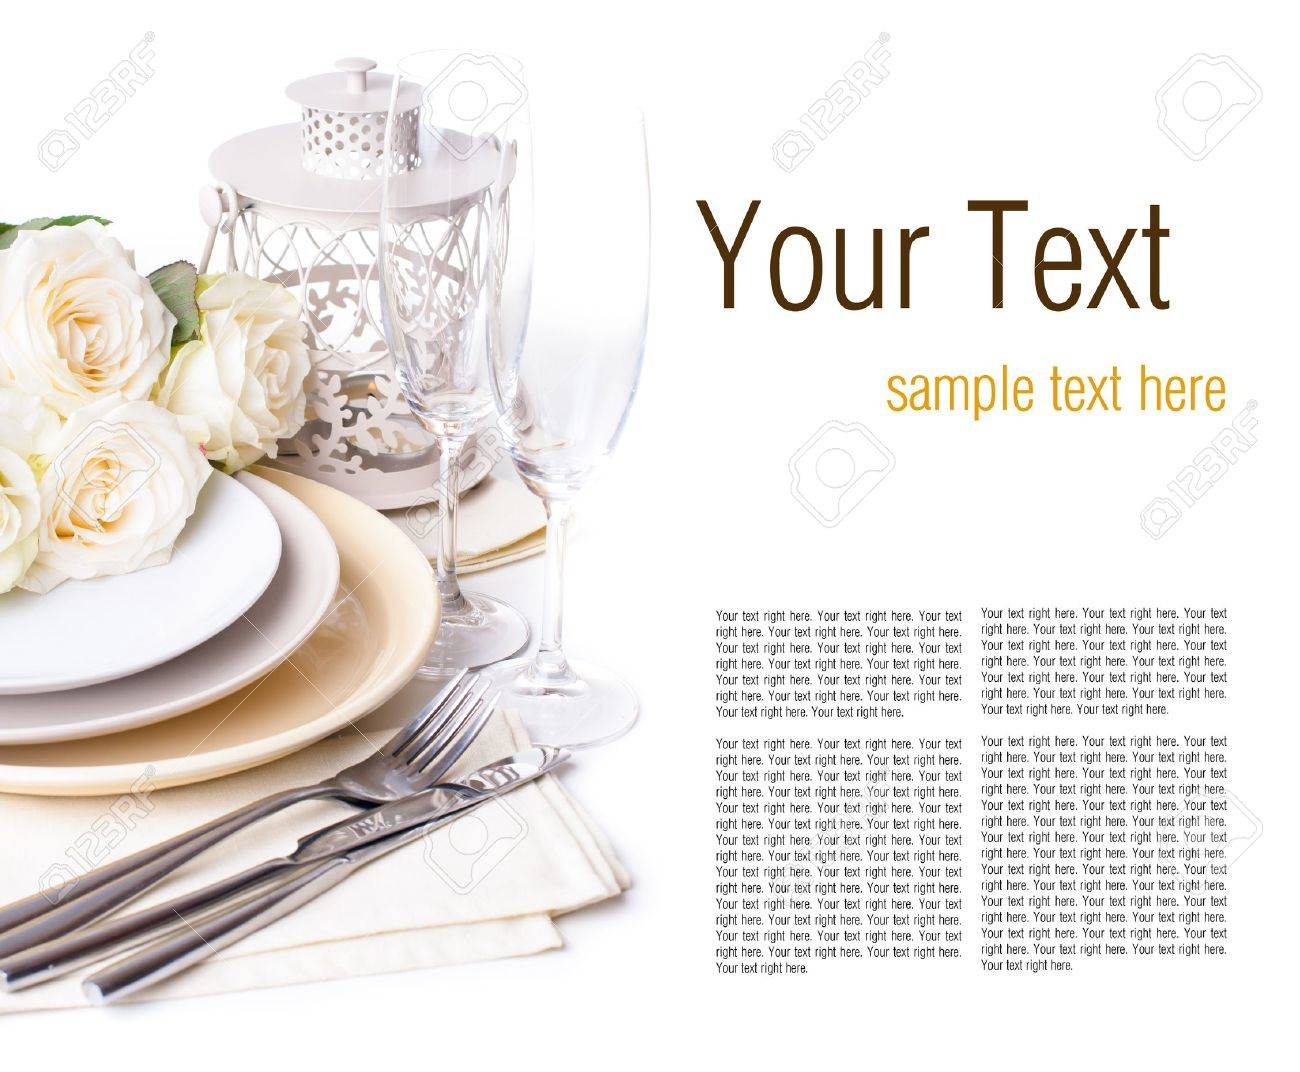 Festive table setting with beige roses wine glasses candles festive table setting with beige roses wine glasses candles napkins and cutlery pronofoot35fo Image collections